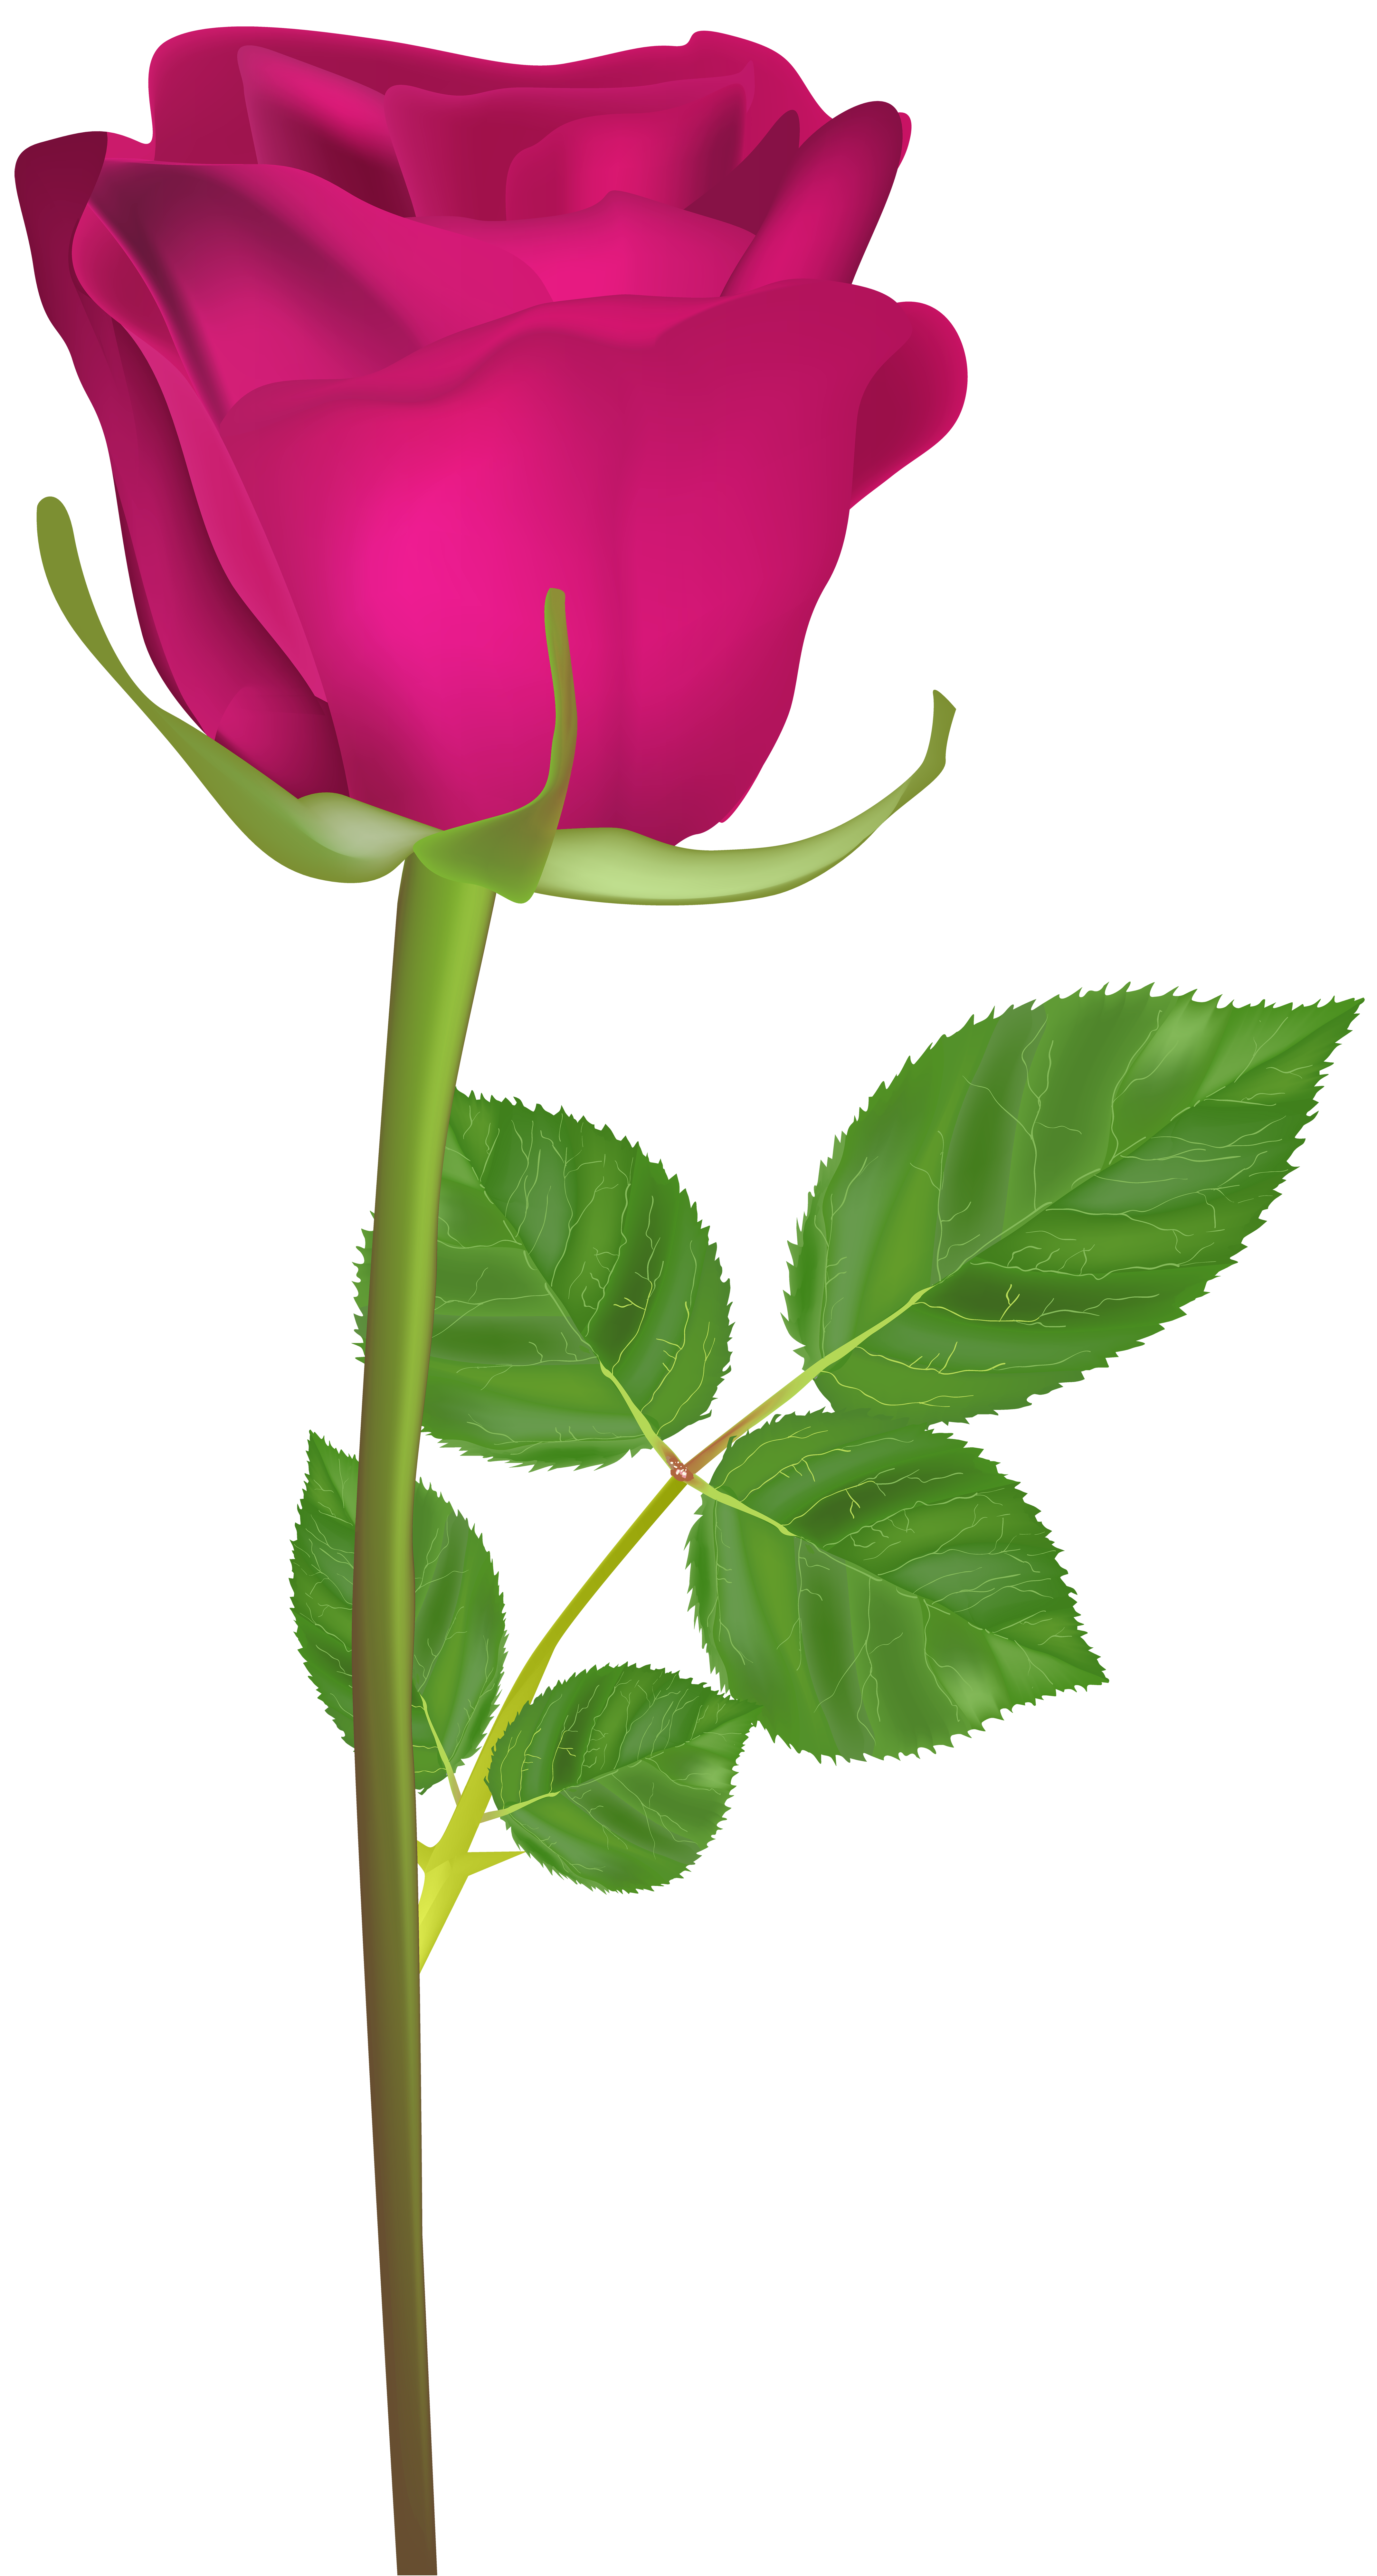 Flower clipart with stem image freeuse download Rose with Stem Pink PNG Clip Art Image | Gallery Yopriceville ... image freeuse download